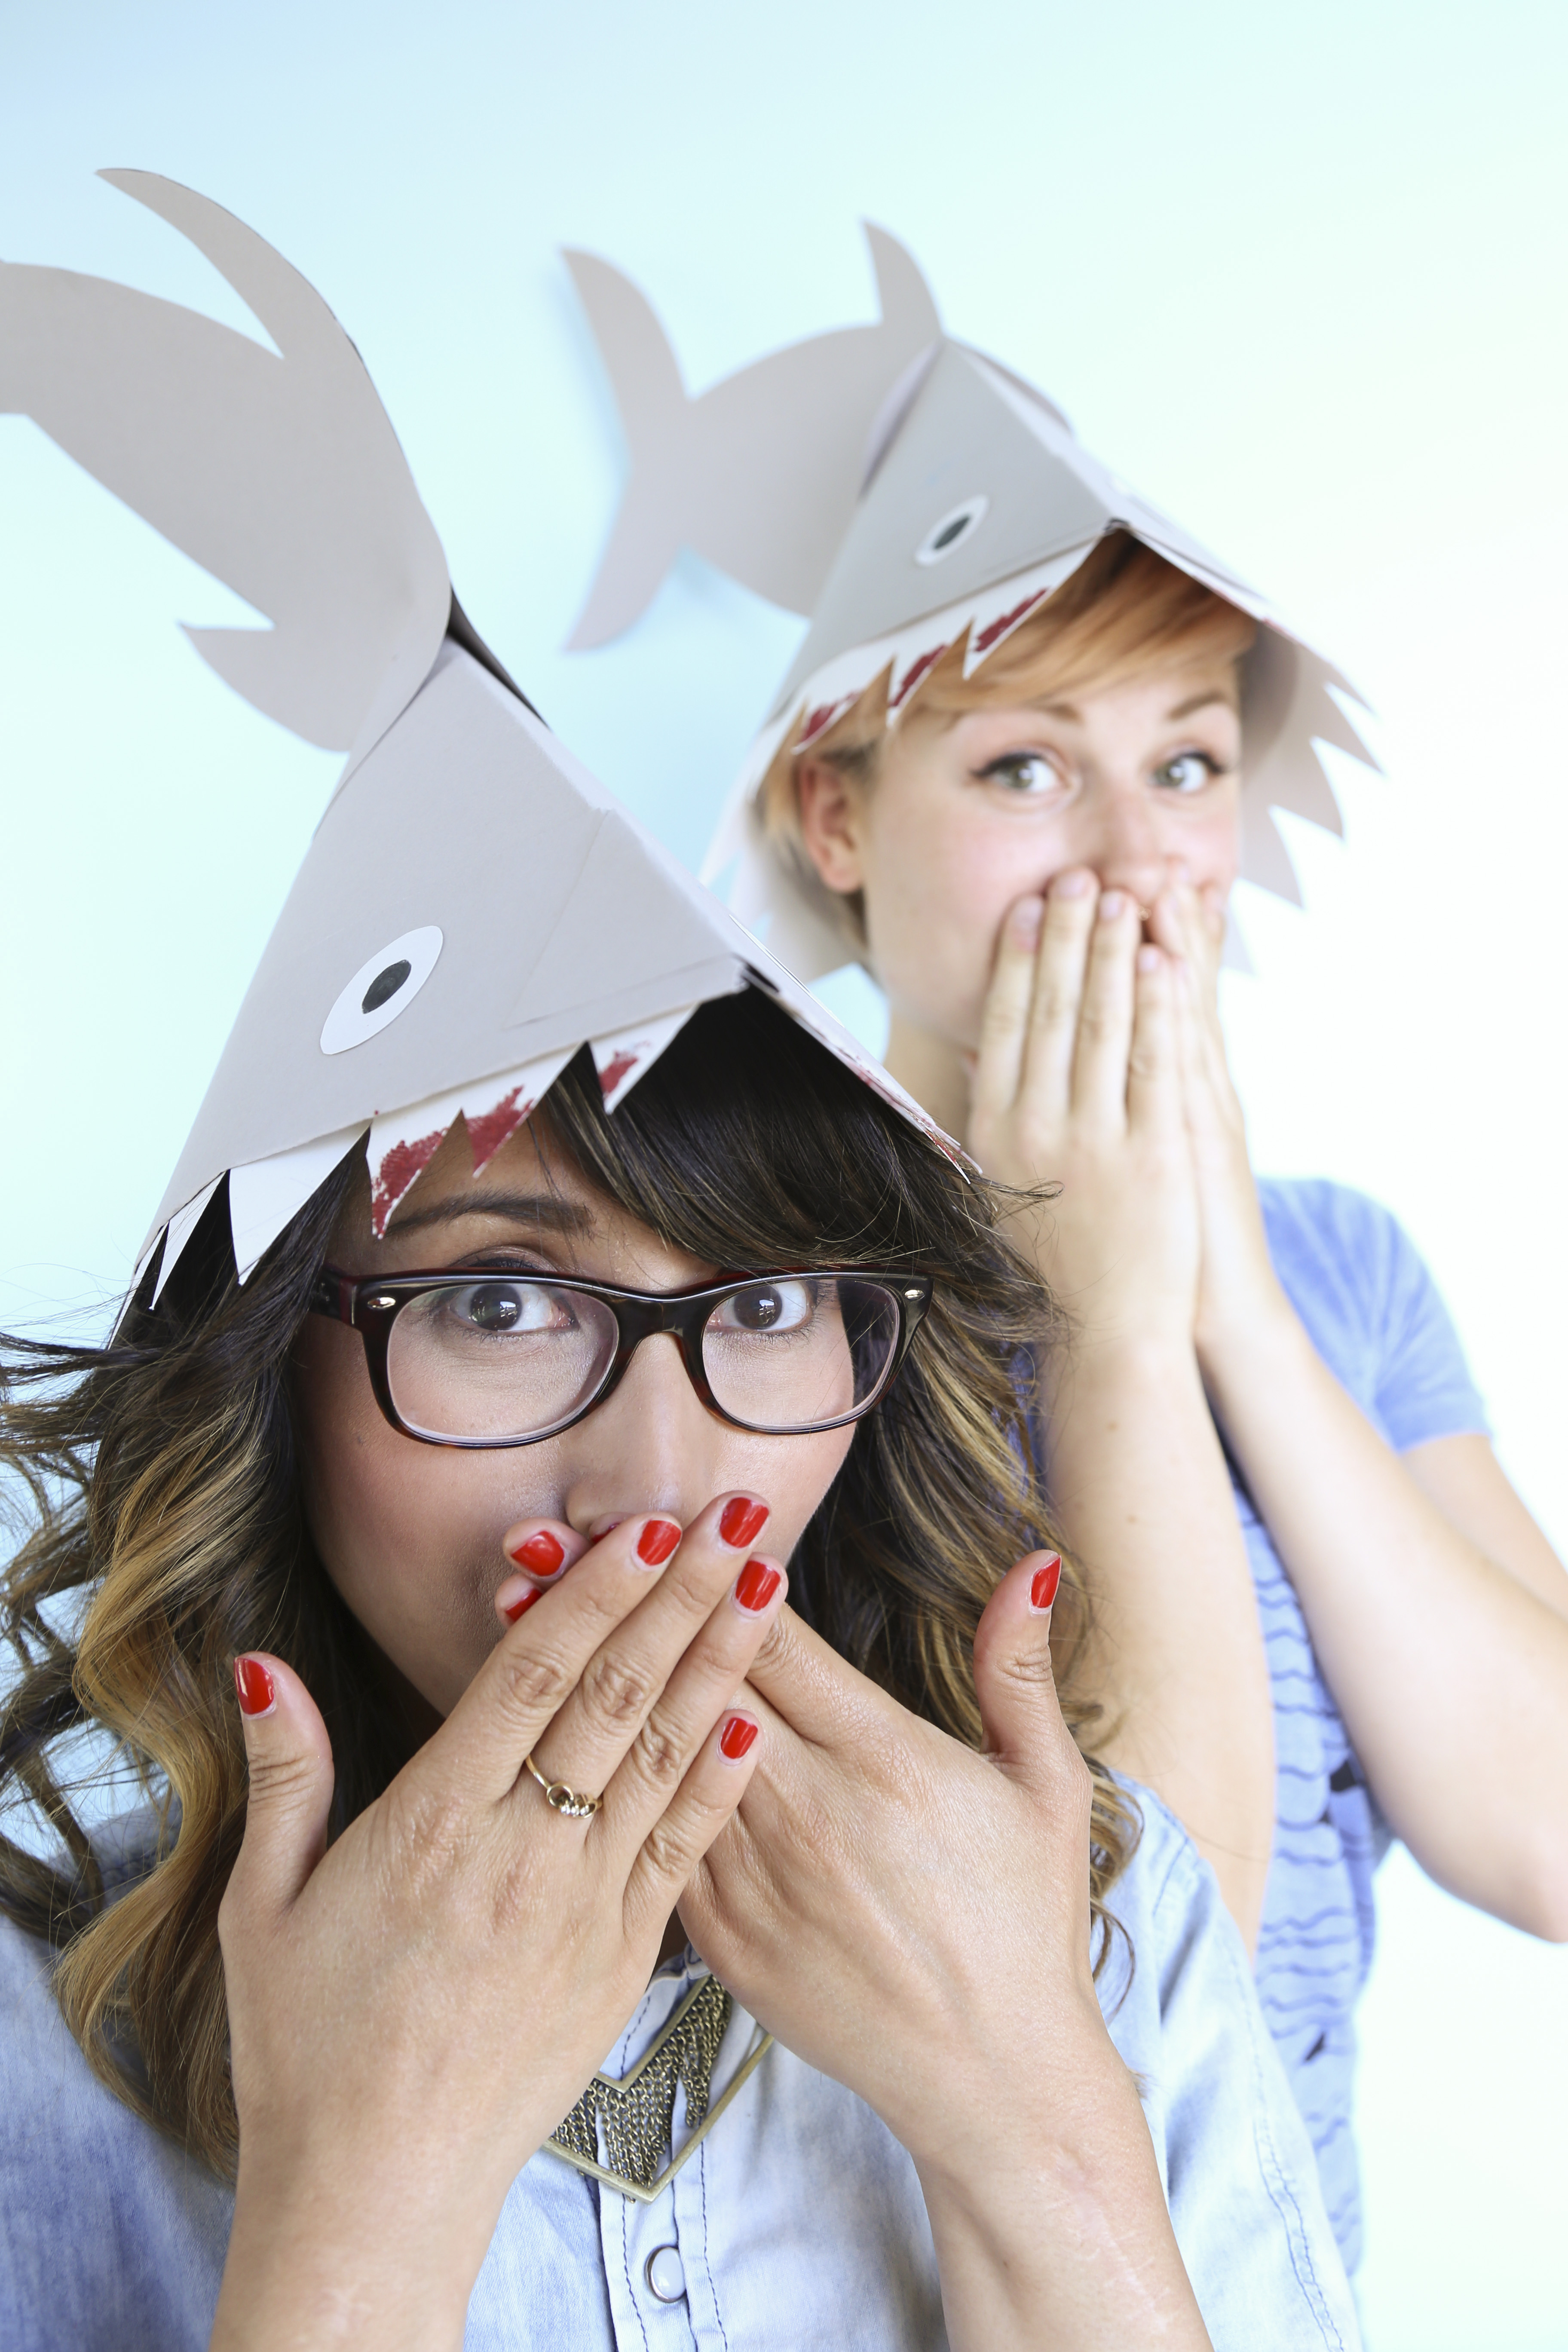 Paper shark fin hat - Shark Attack Hat: 7 Steps (with